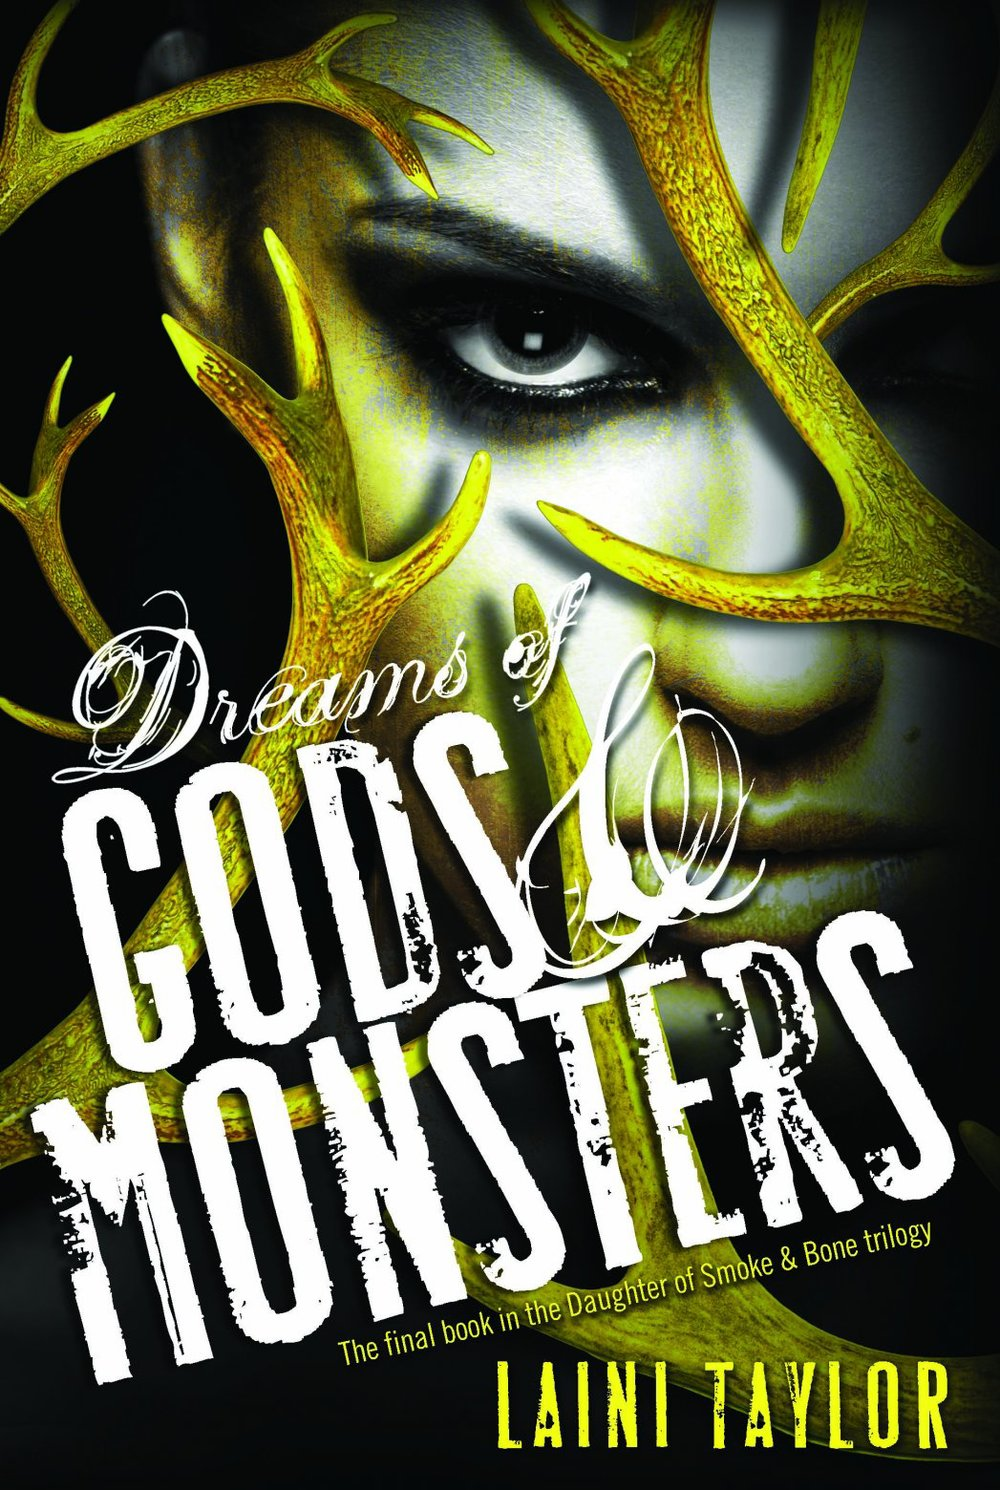 Dreams of Gods & Monsters by Laini Taylor (Audio) Amazon | Goodreads